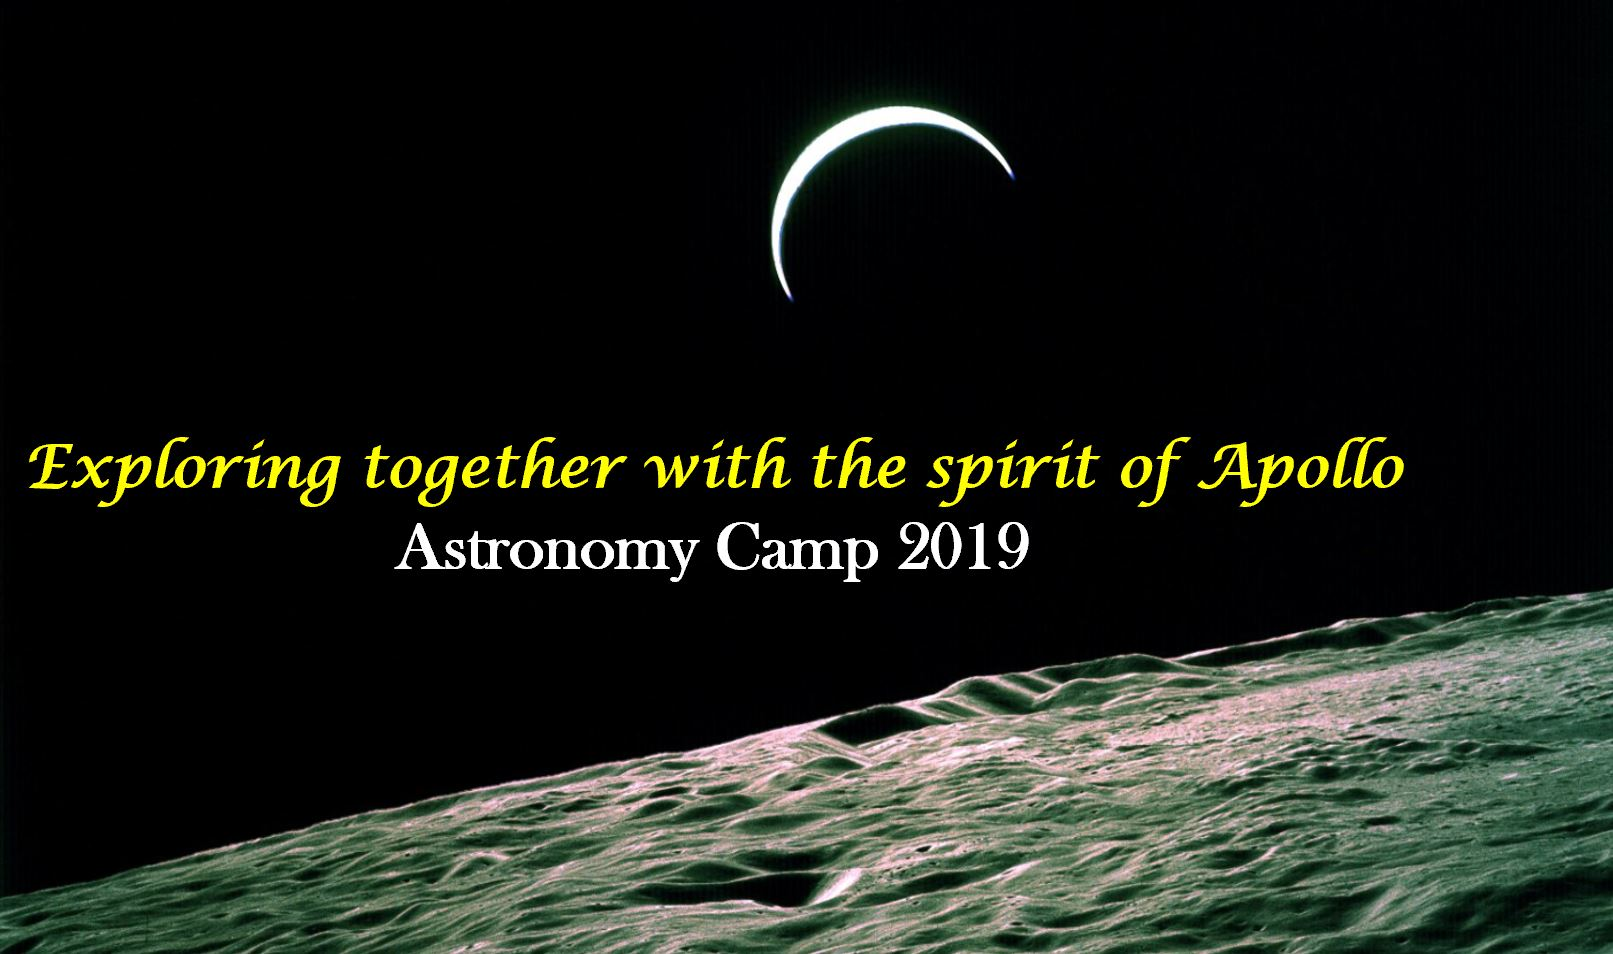 Astronomy Camp 2019: Continuing to inspire through authentic exploration.